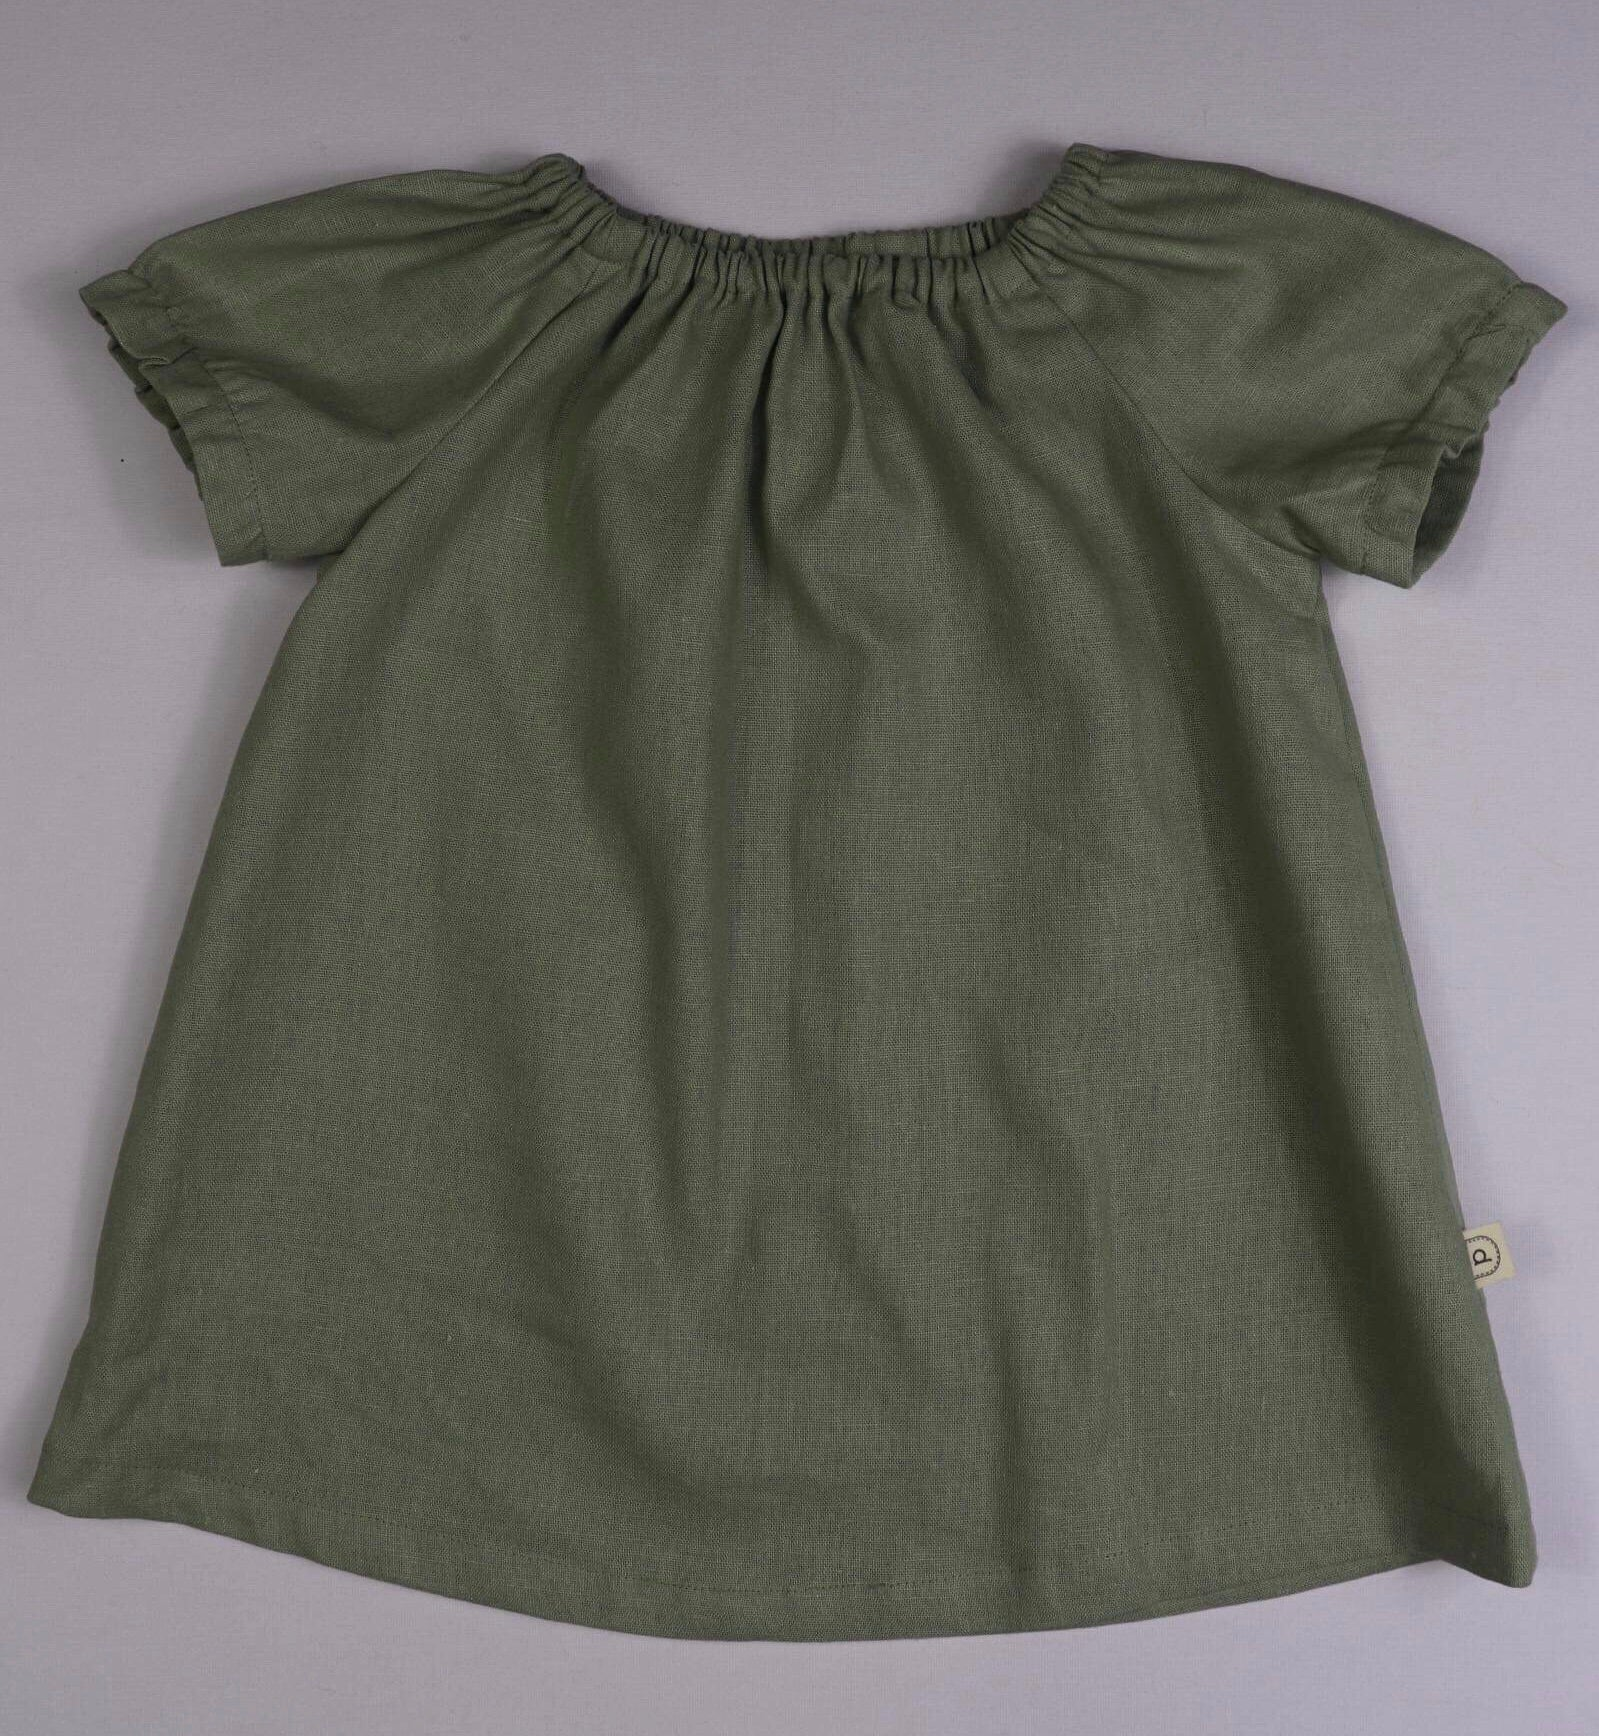 Poche Peasant Top/Short Sleeve - SAGE